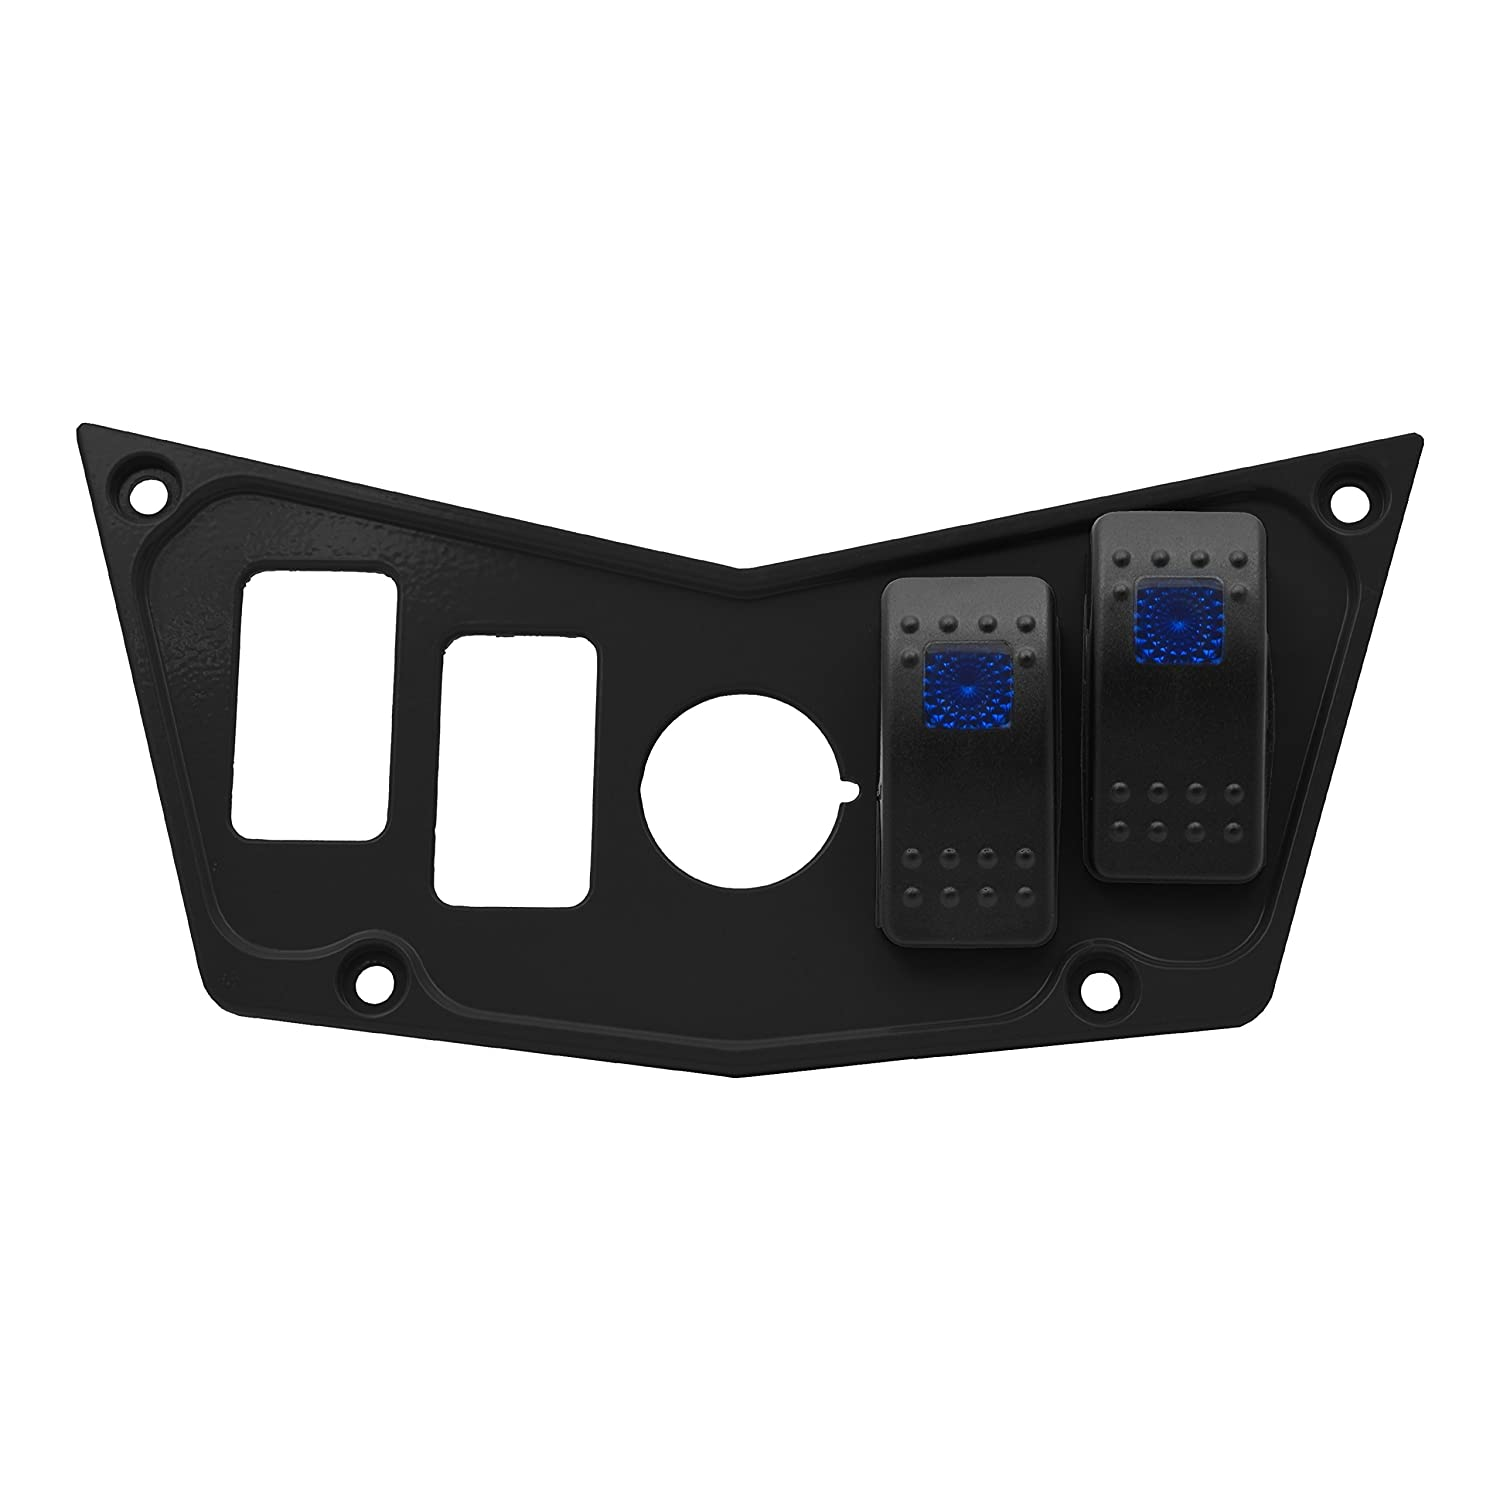 STV Motorsports Custom Aluminum Black Dash Panel for Polaris RZR XP 900, 800, S, 570, Jagged X with 2 Free Rocker Switches STVMotorsports 4333041673